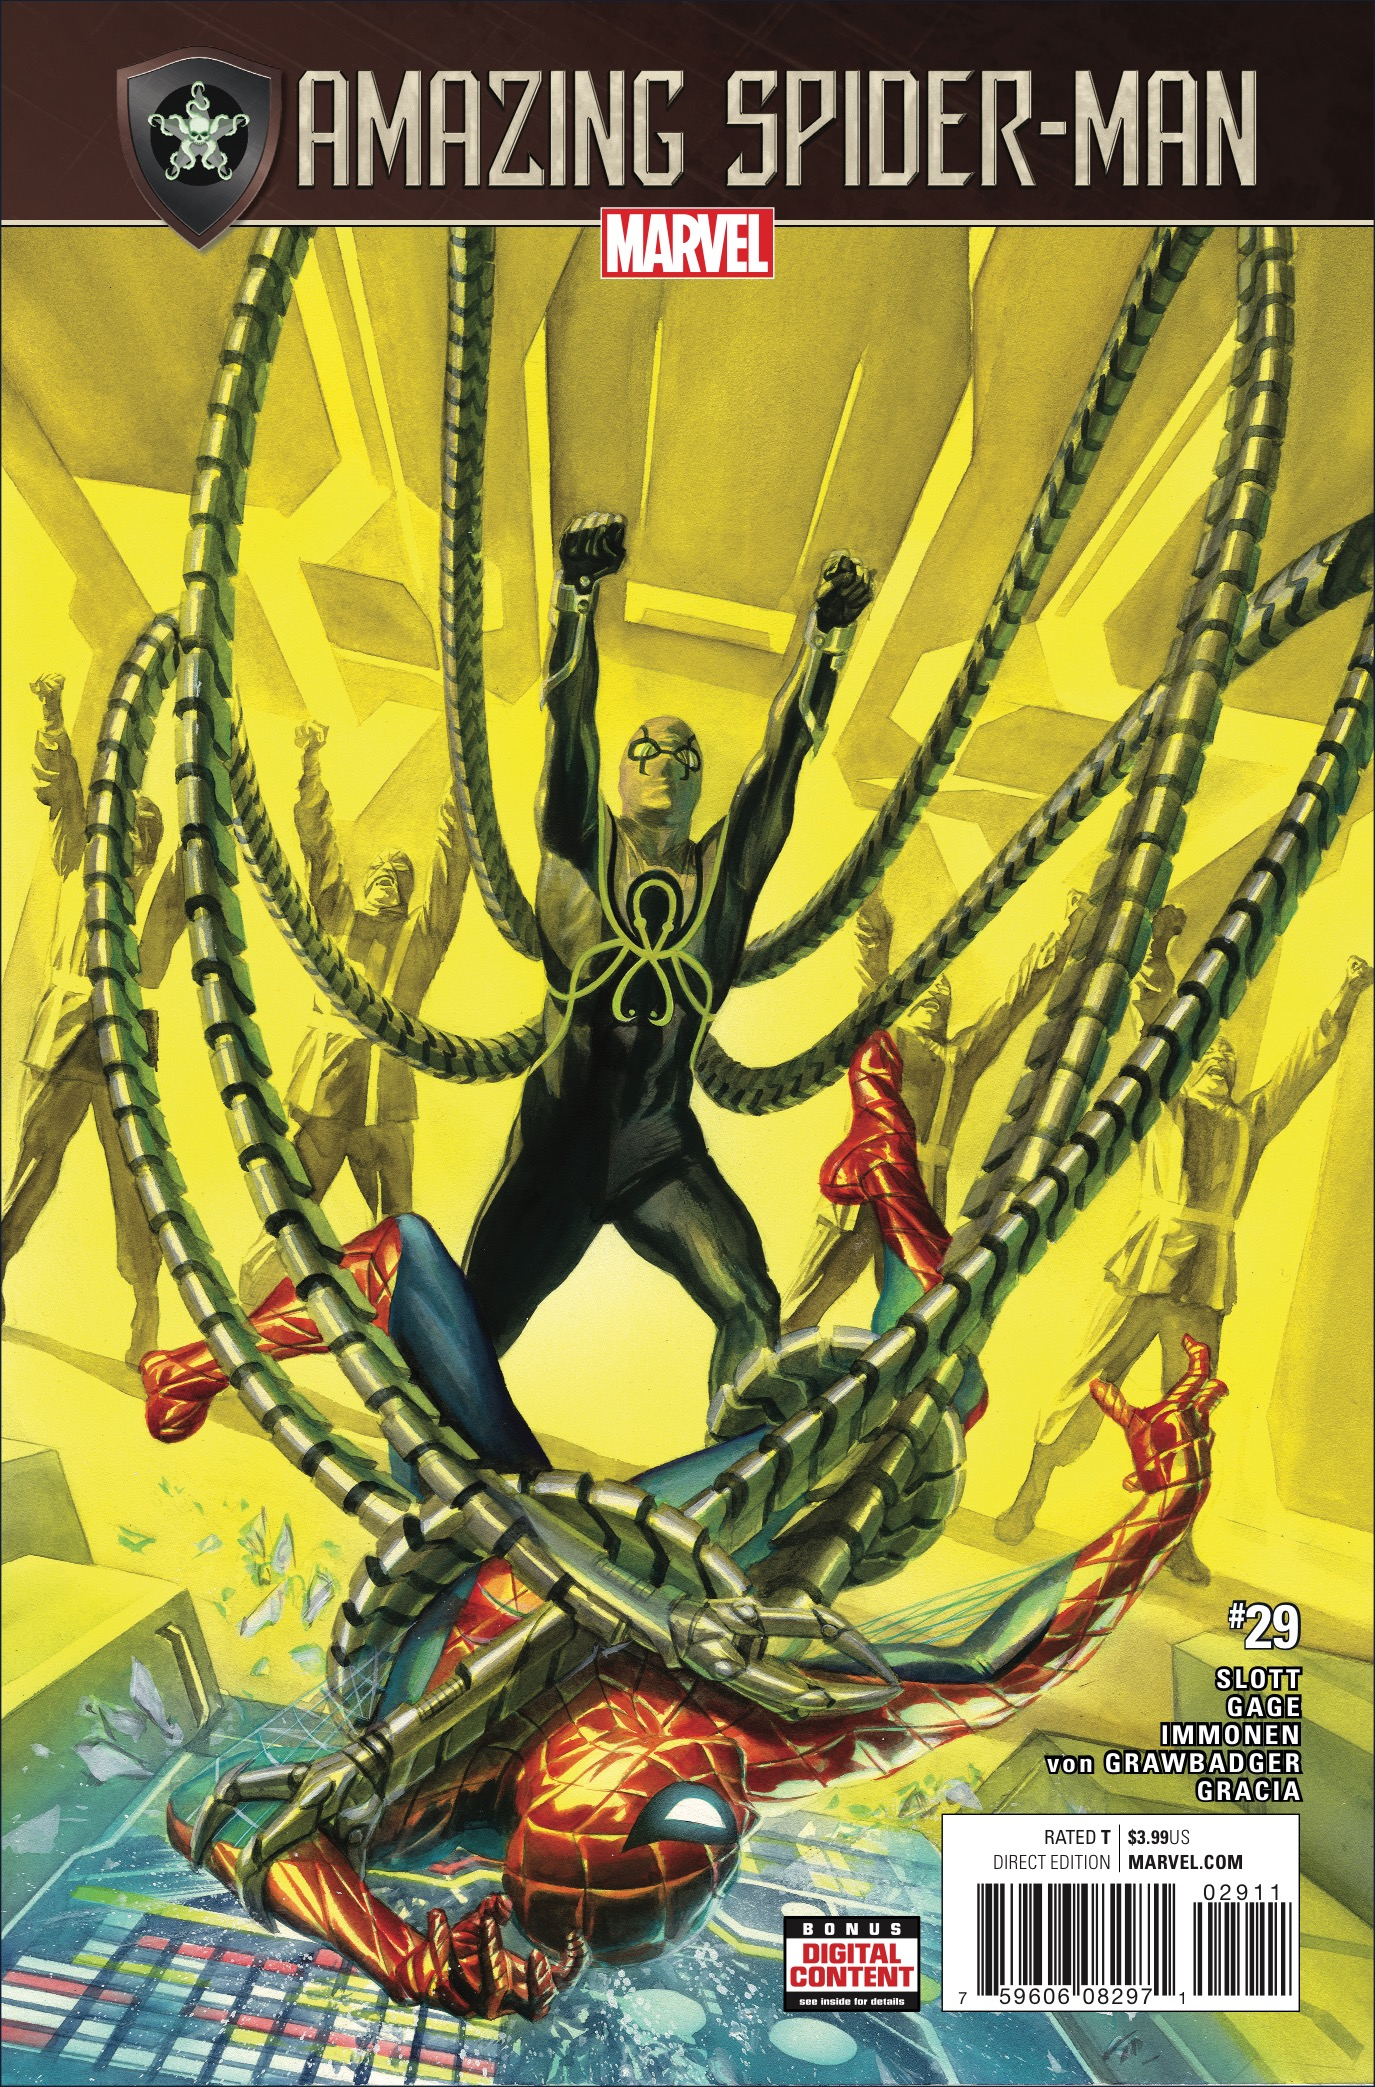 Marvel Preview: Amazing Spider-Man #29